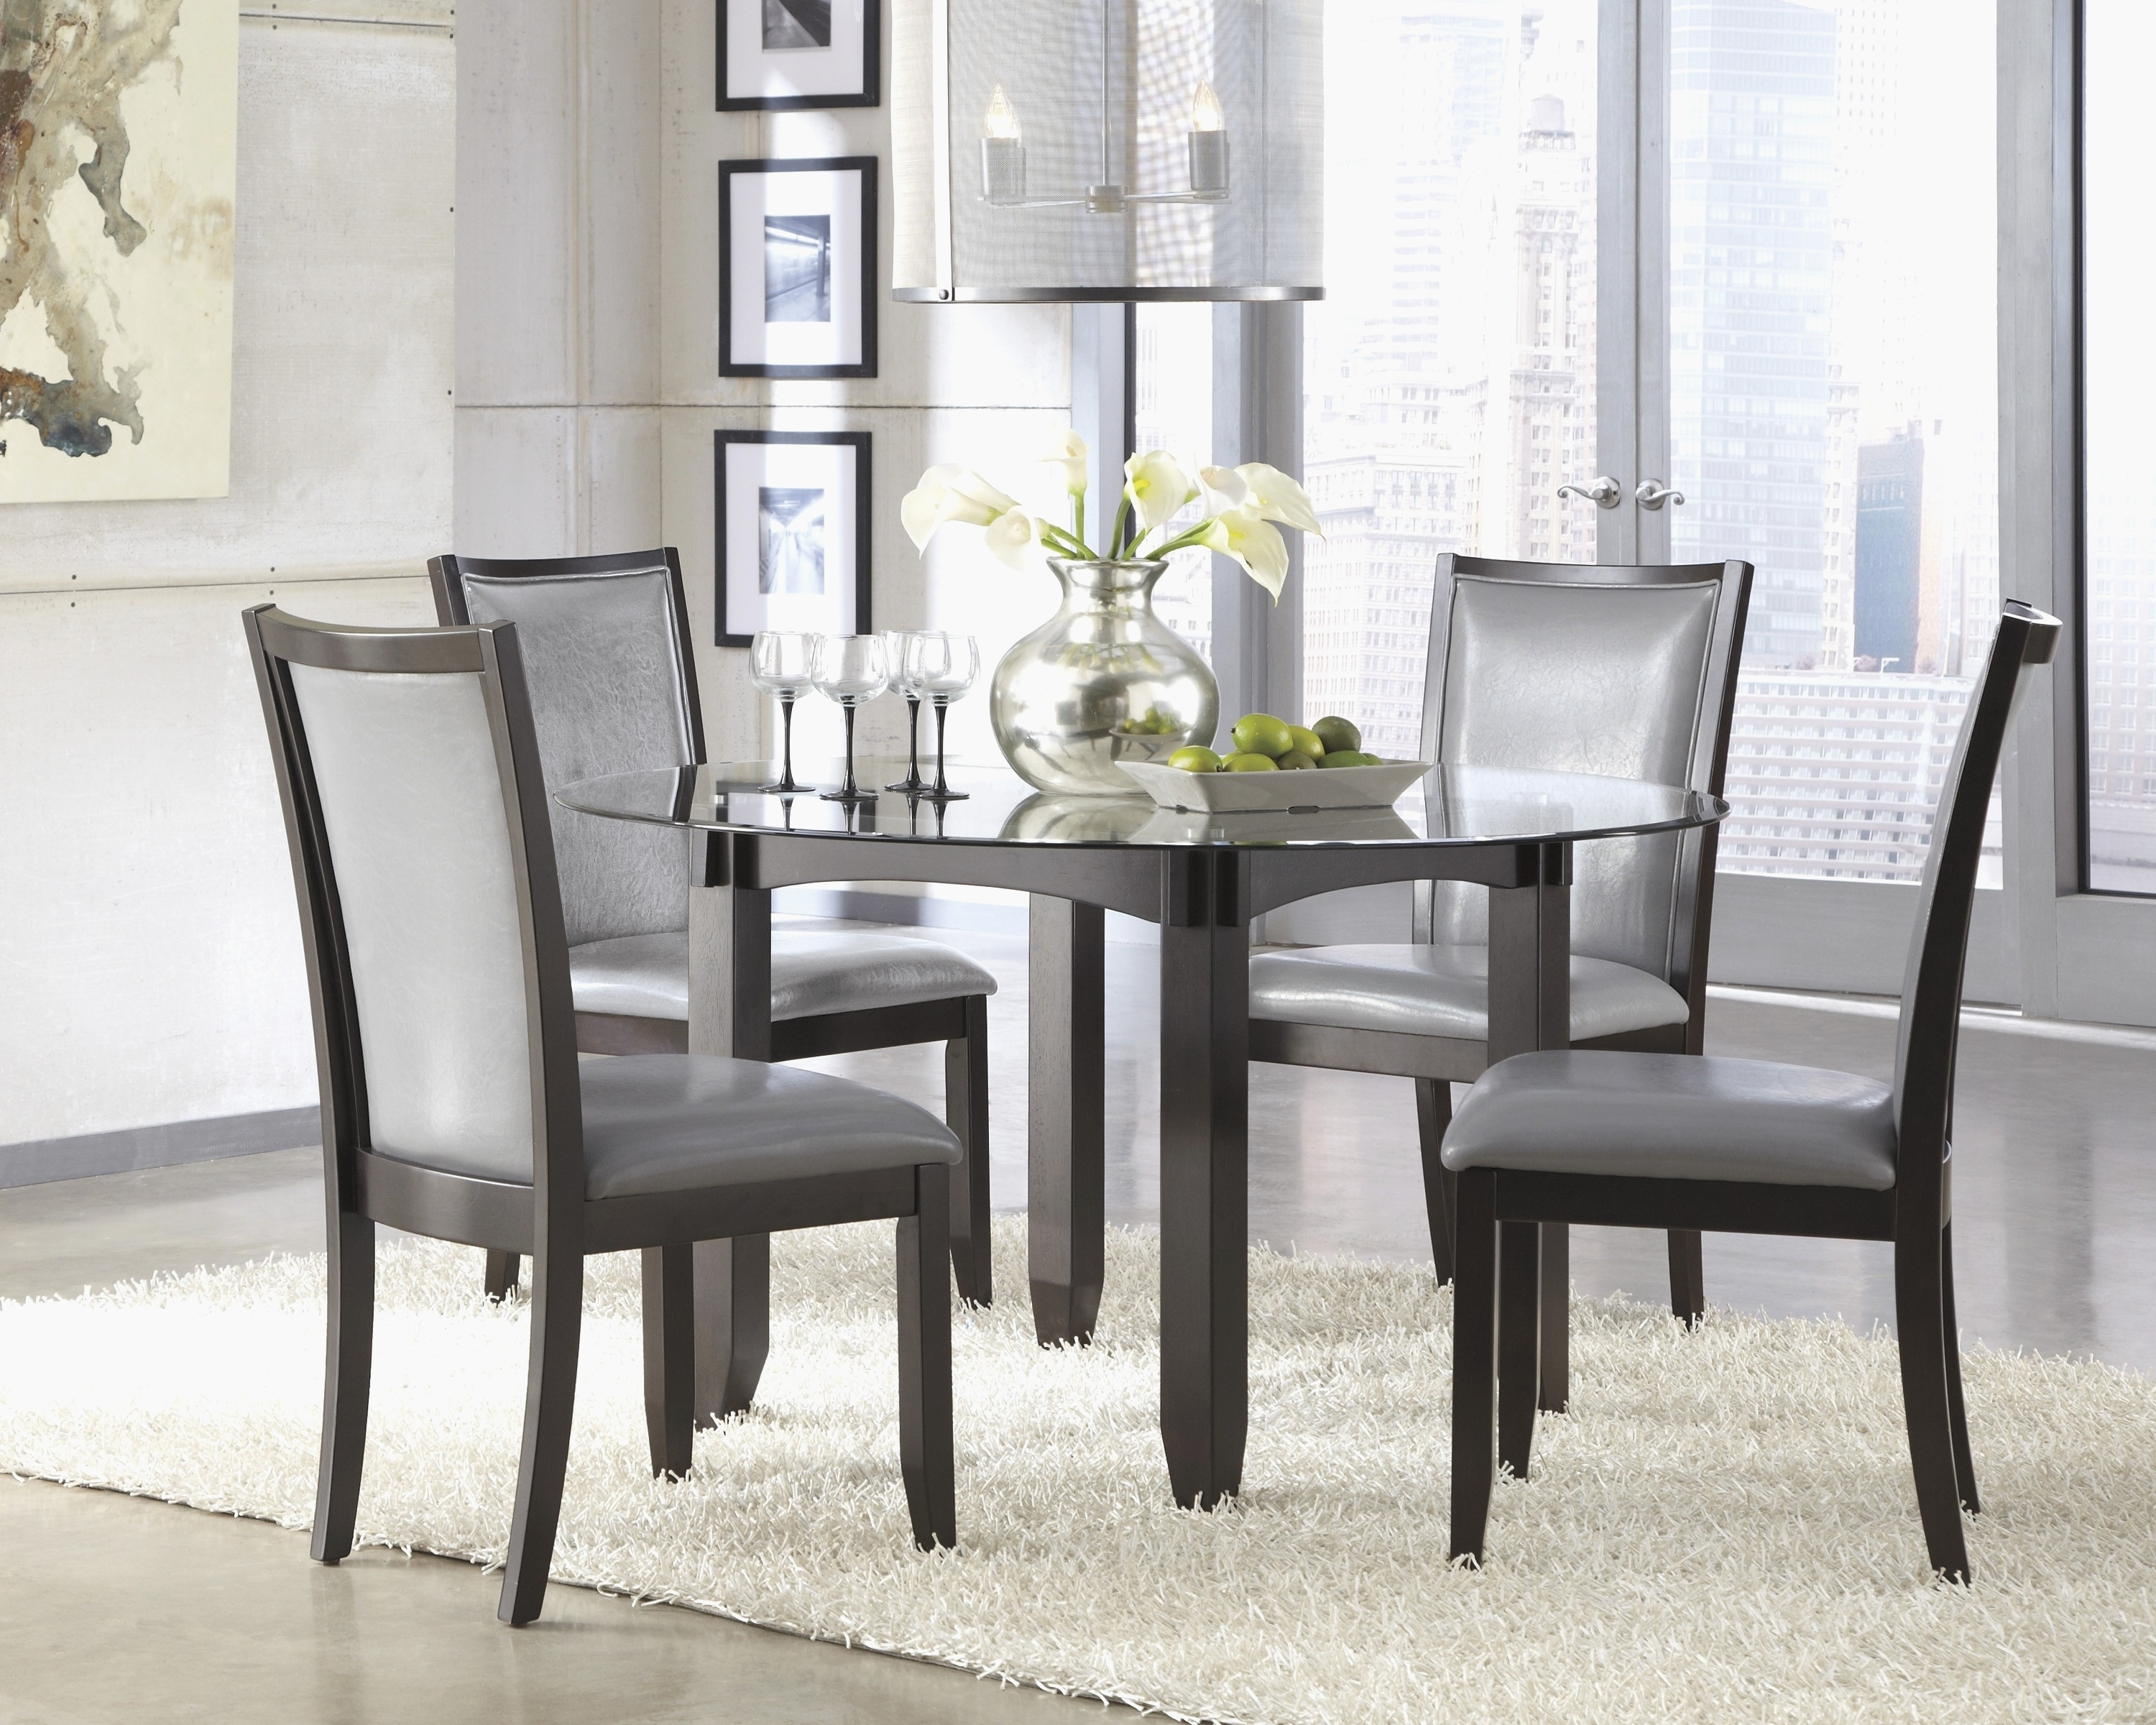 Round Black Glass Dining Tables And Chairs Intended For Best And Newest Round Black Glass Dining Table Awesome Awesome Round Glass Dining (View 18 of 25)